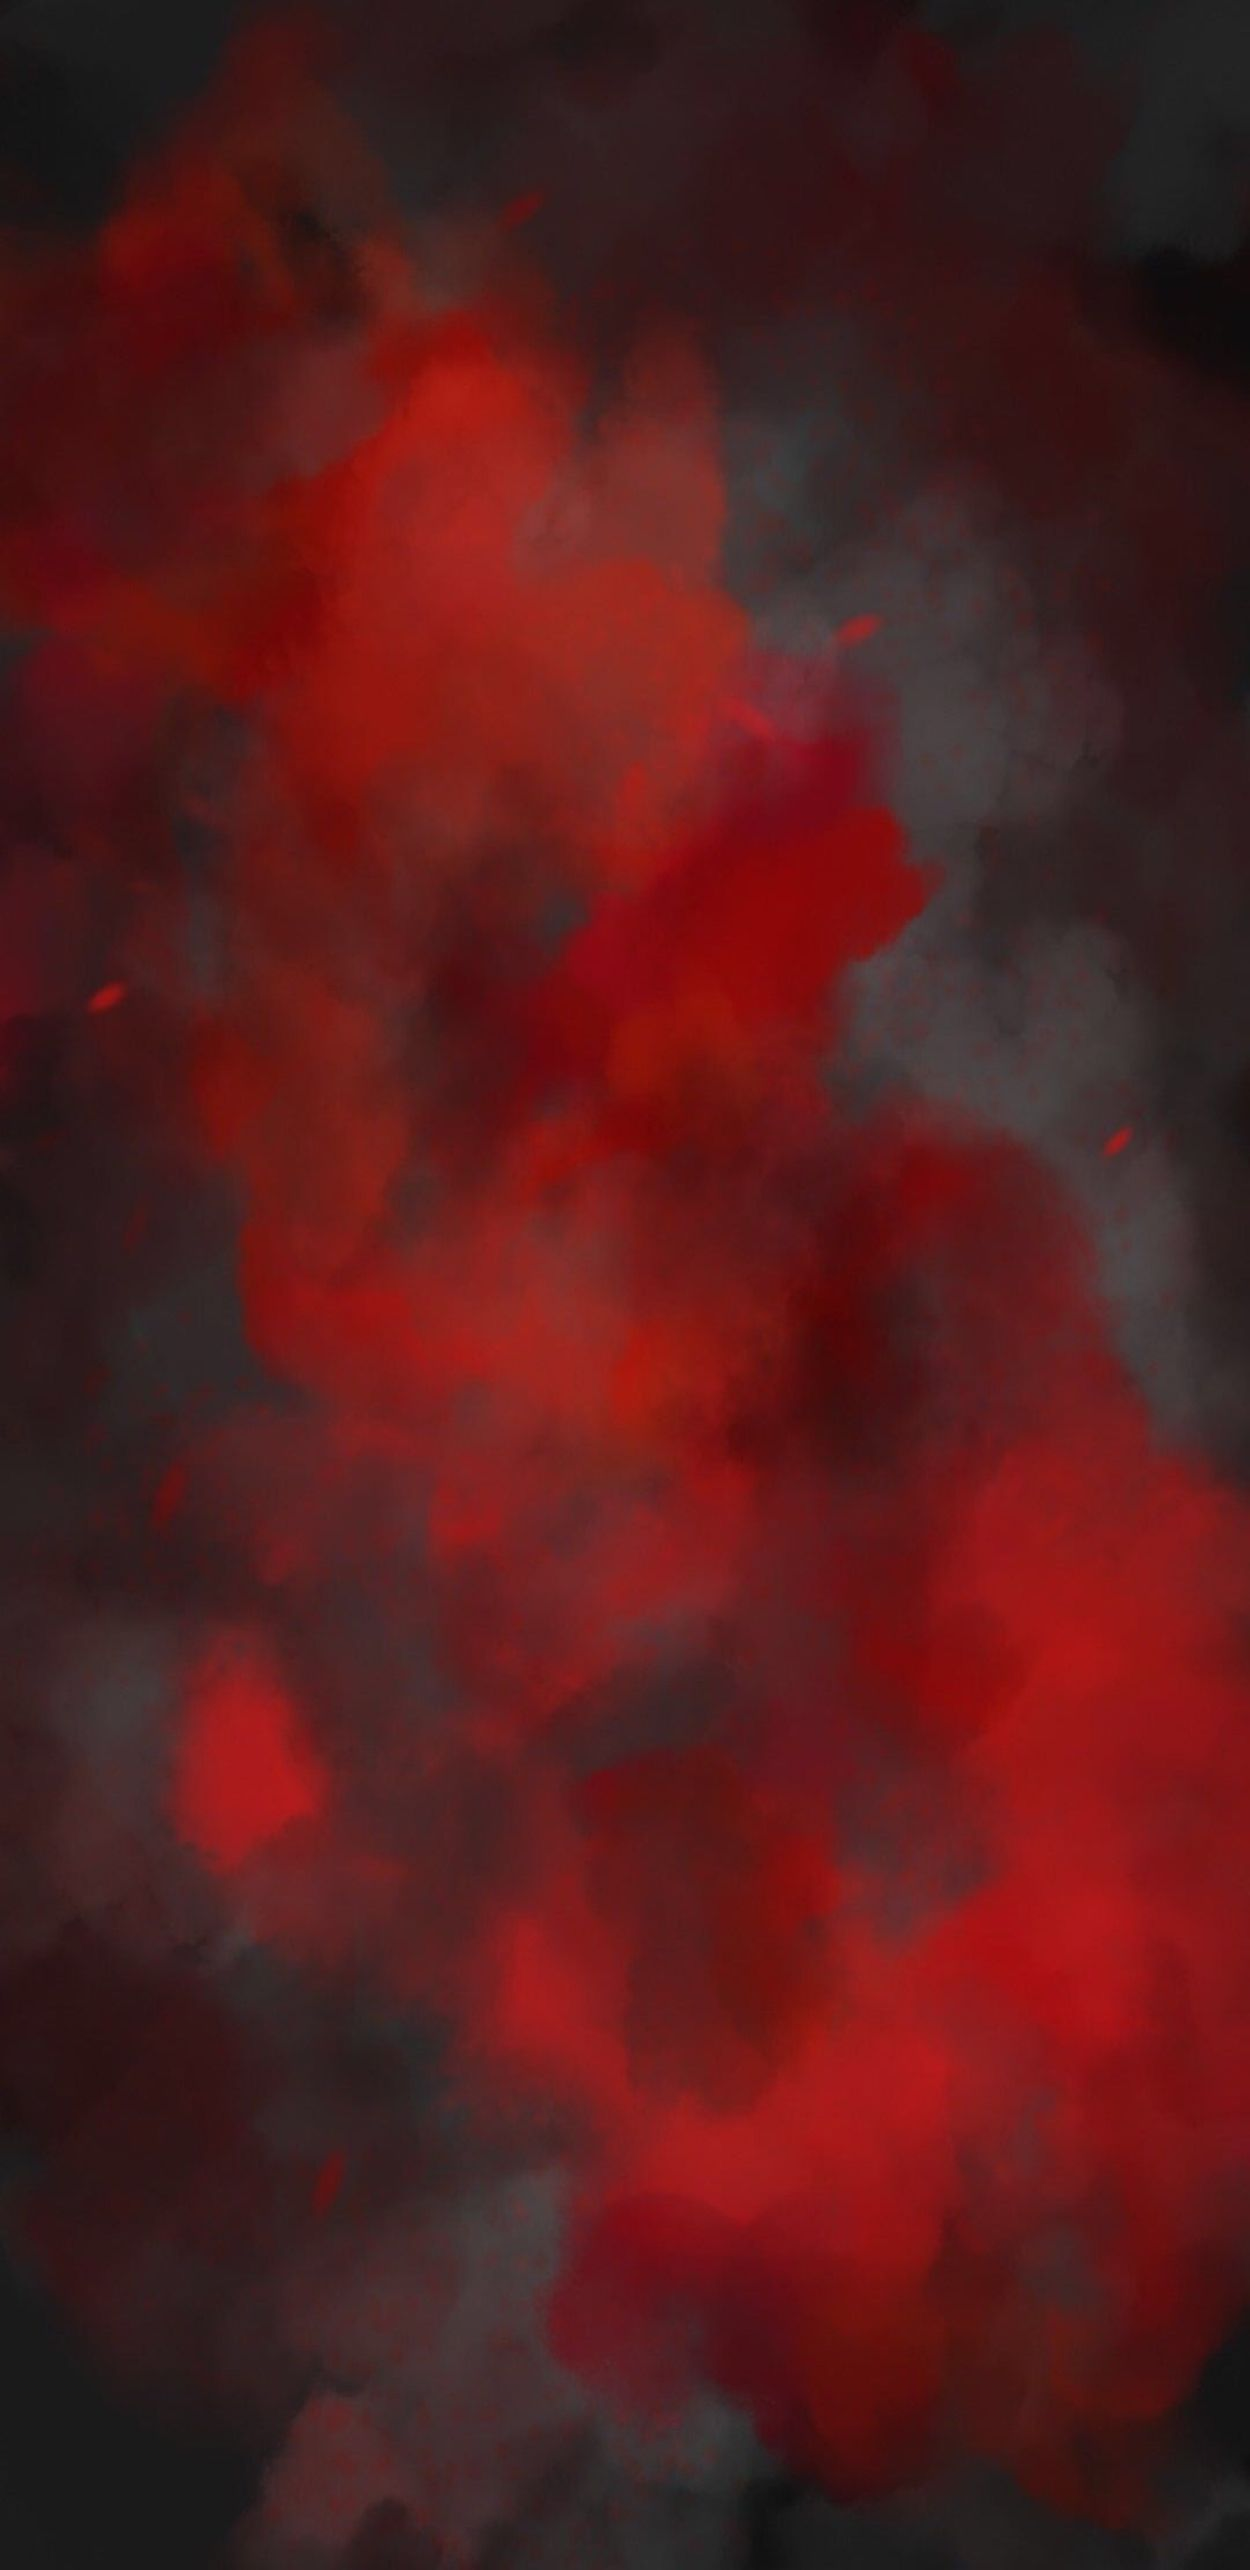 Red Dark Blood Abstract Wallpaper Galaxy Clean Beauty